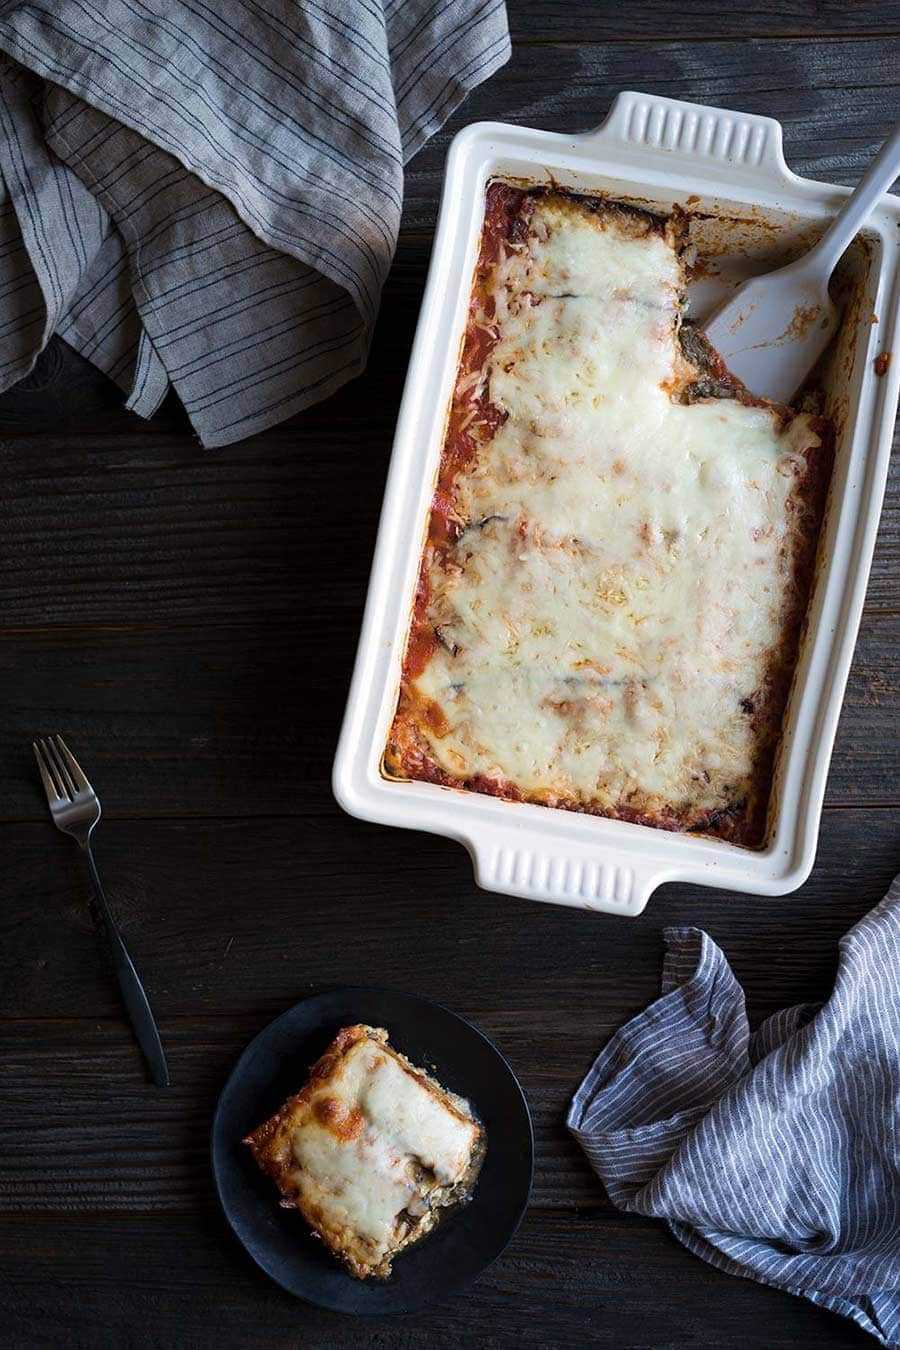 Wondering how to make eggplant lasagna? Look no further! If you love lasagna but find it too filling (or are trying to cut back on pasta), you need to try this easy eggplant lasagna recipe!